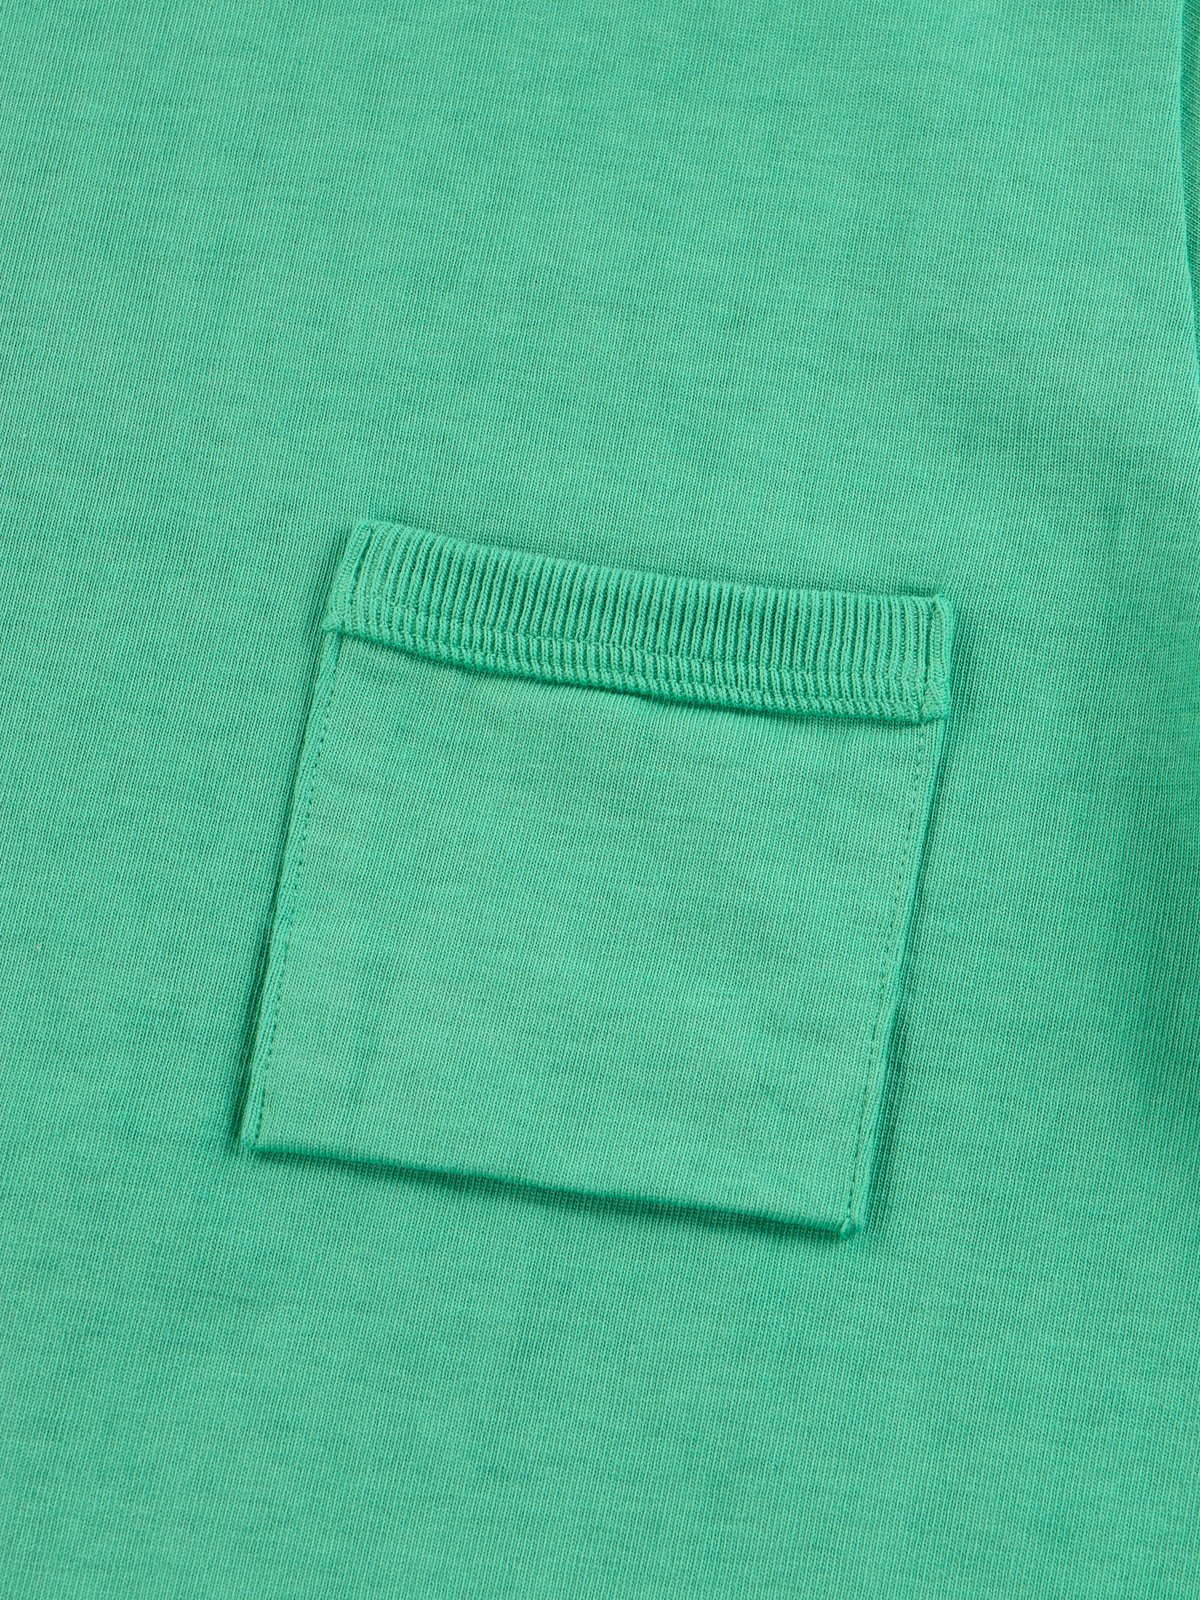 Kelly Green Dotsume Pocket T–Shirt - Image 5